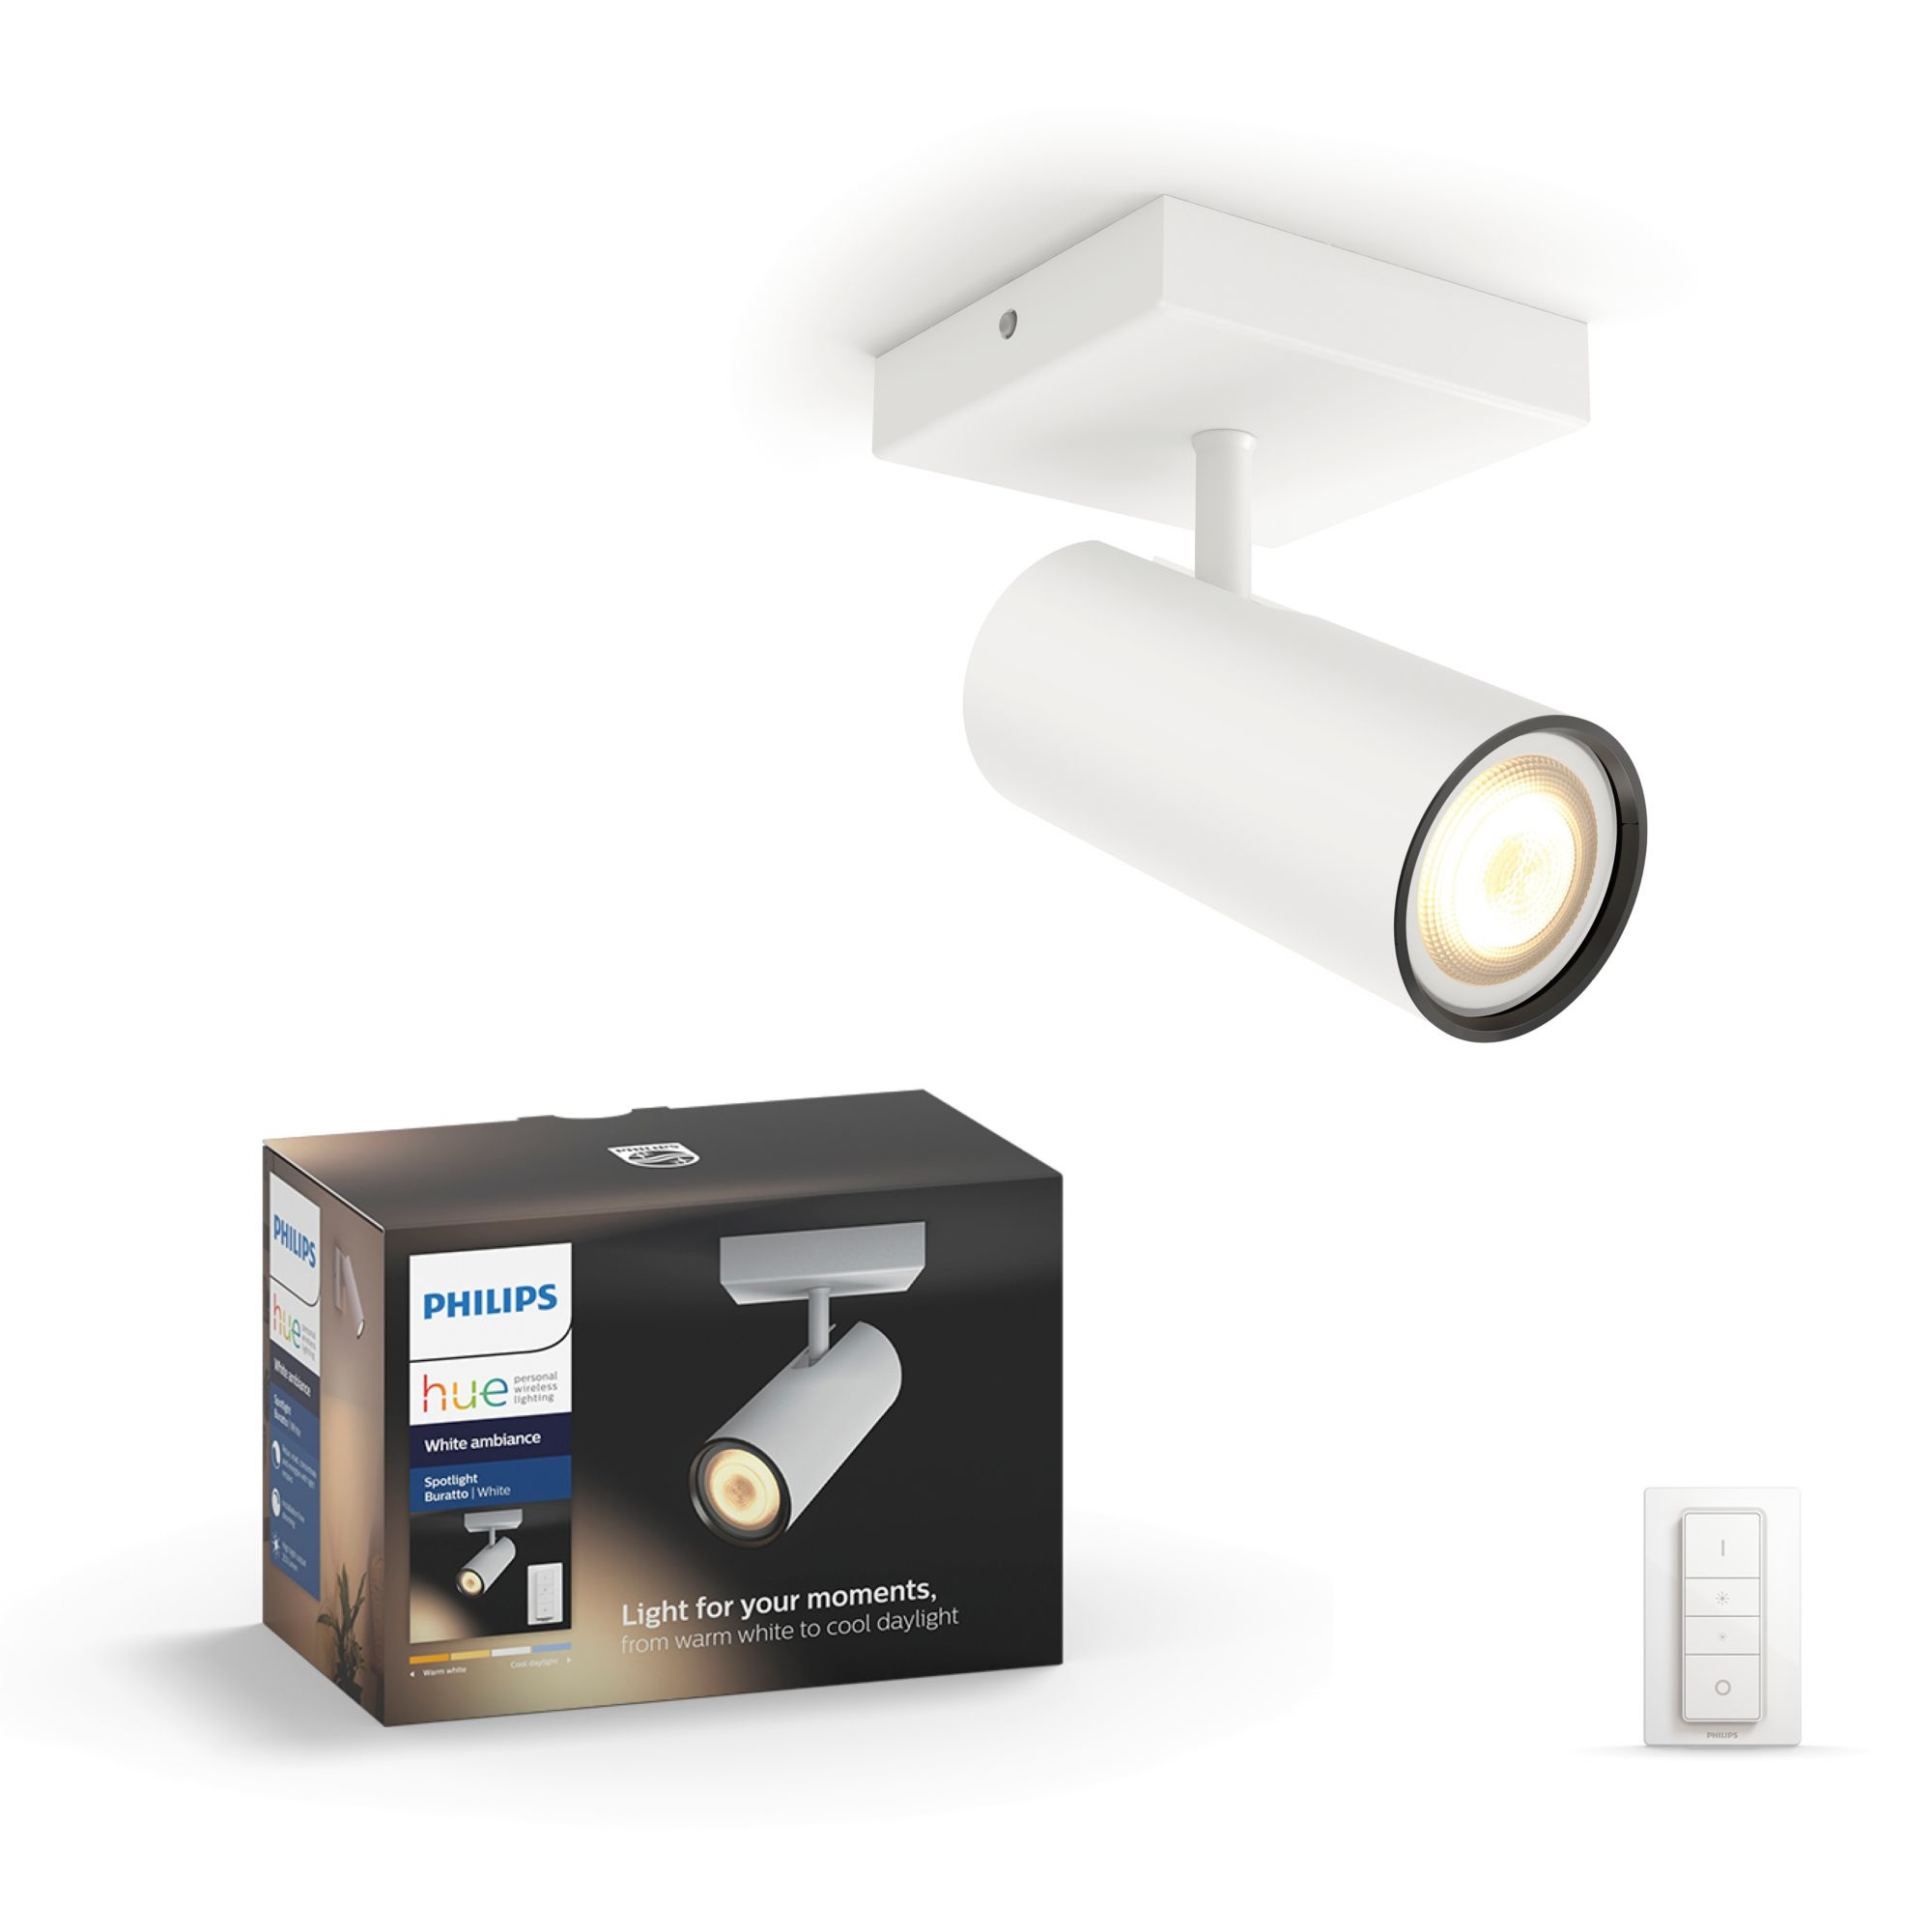 Philips Hue Buratto LED 1flg. Spot weiß